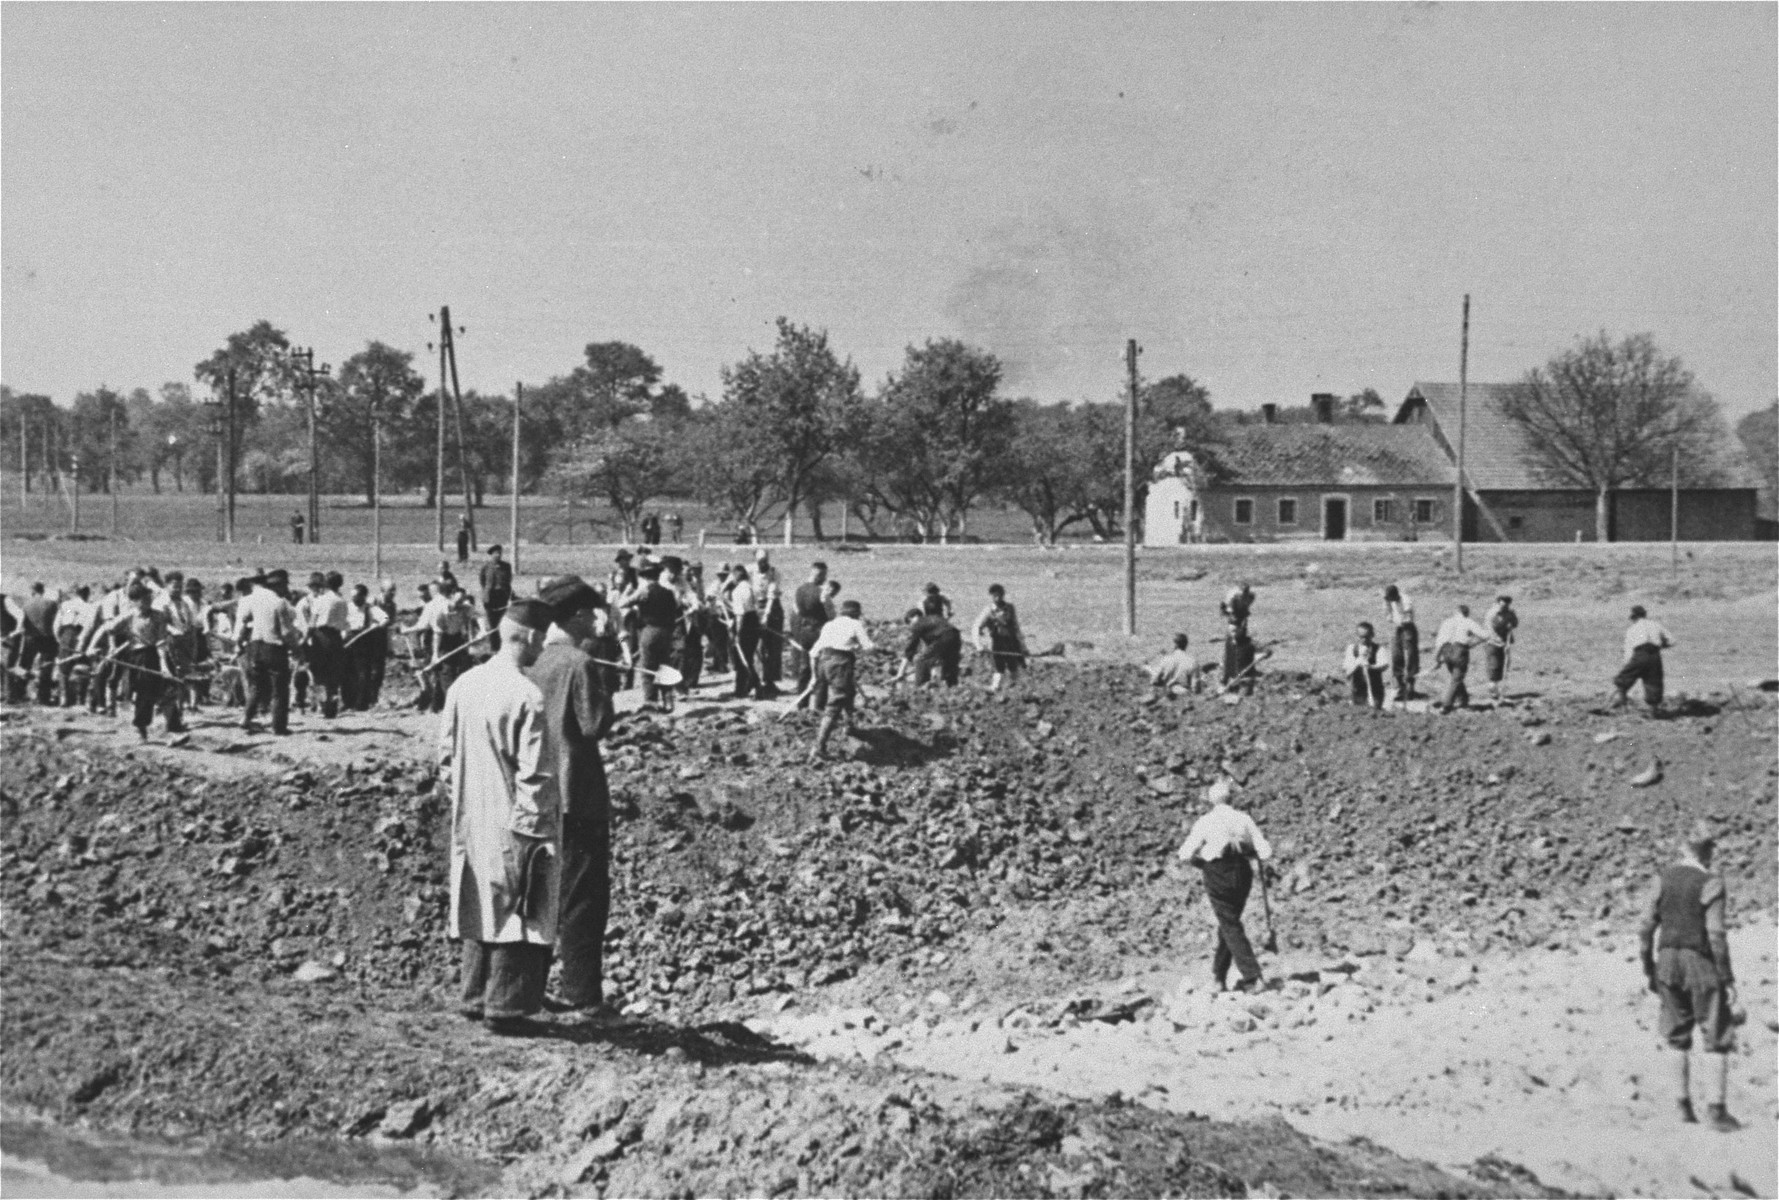 Austrian civilians prepare mass graves to bury former deceased prisoners in the Gusen concentration camp.